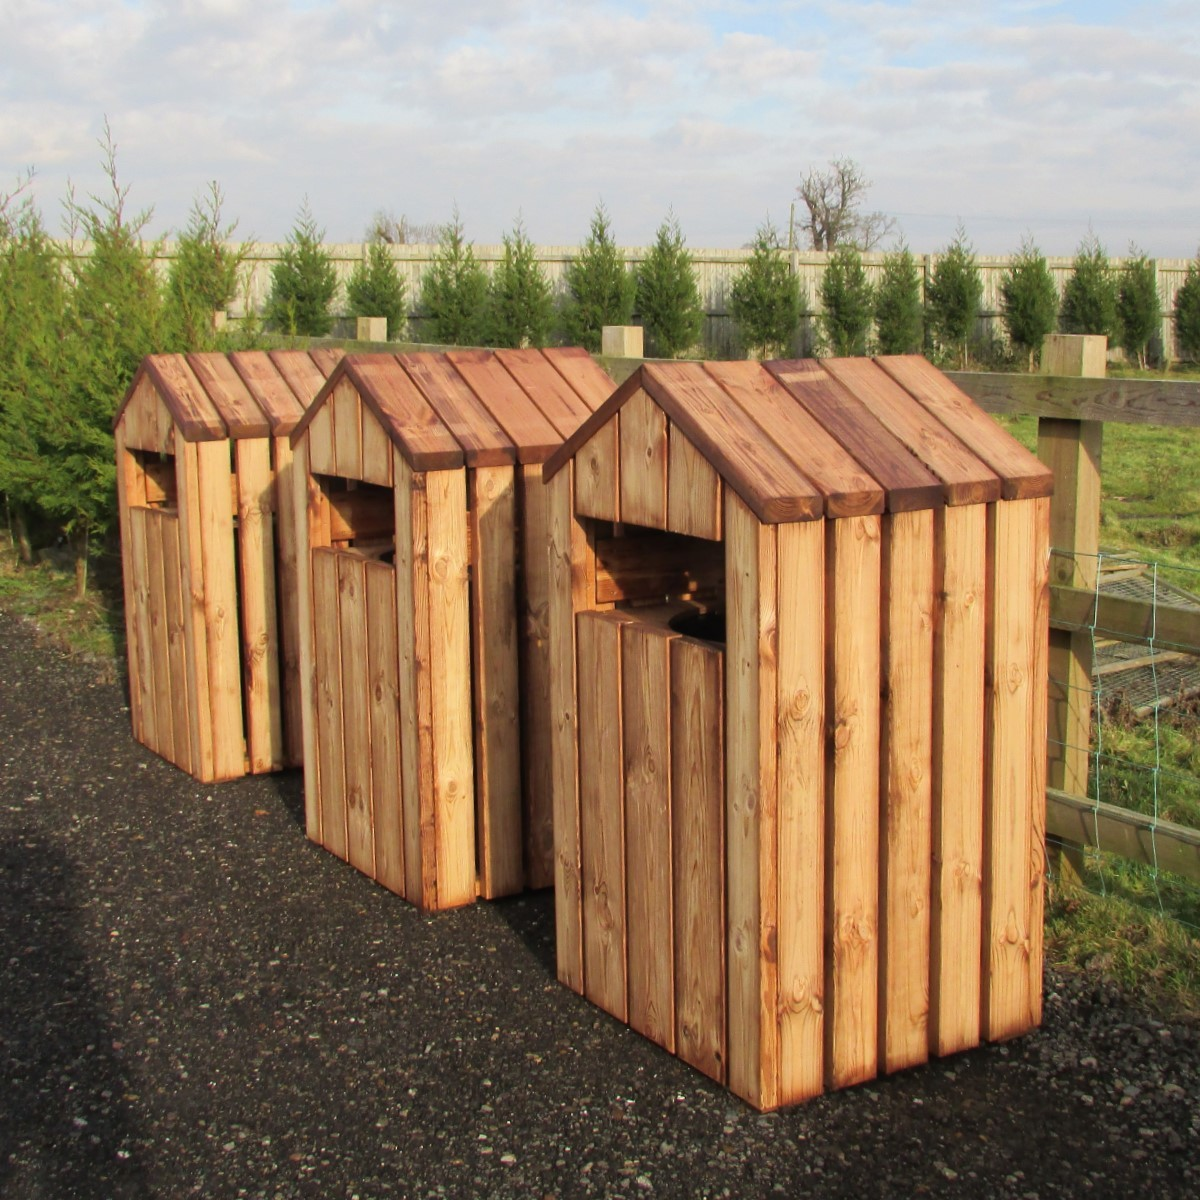 3 wooden litter bins with pitched roof lids in a line on tarmac path